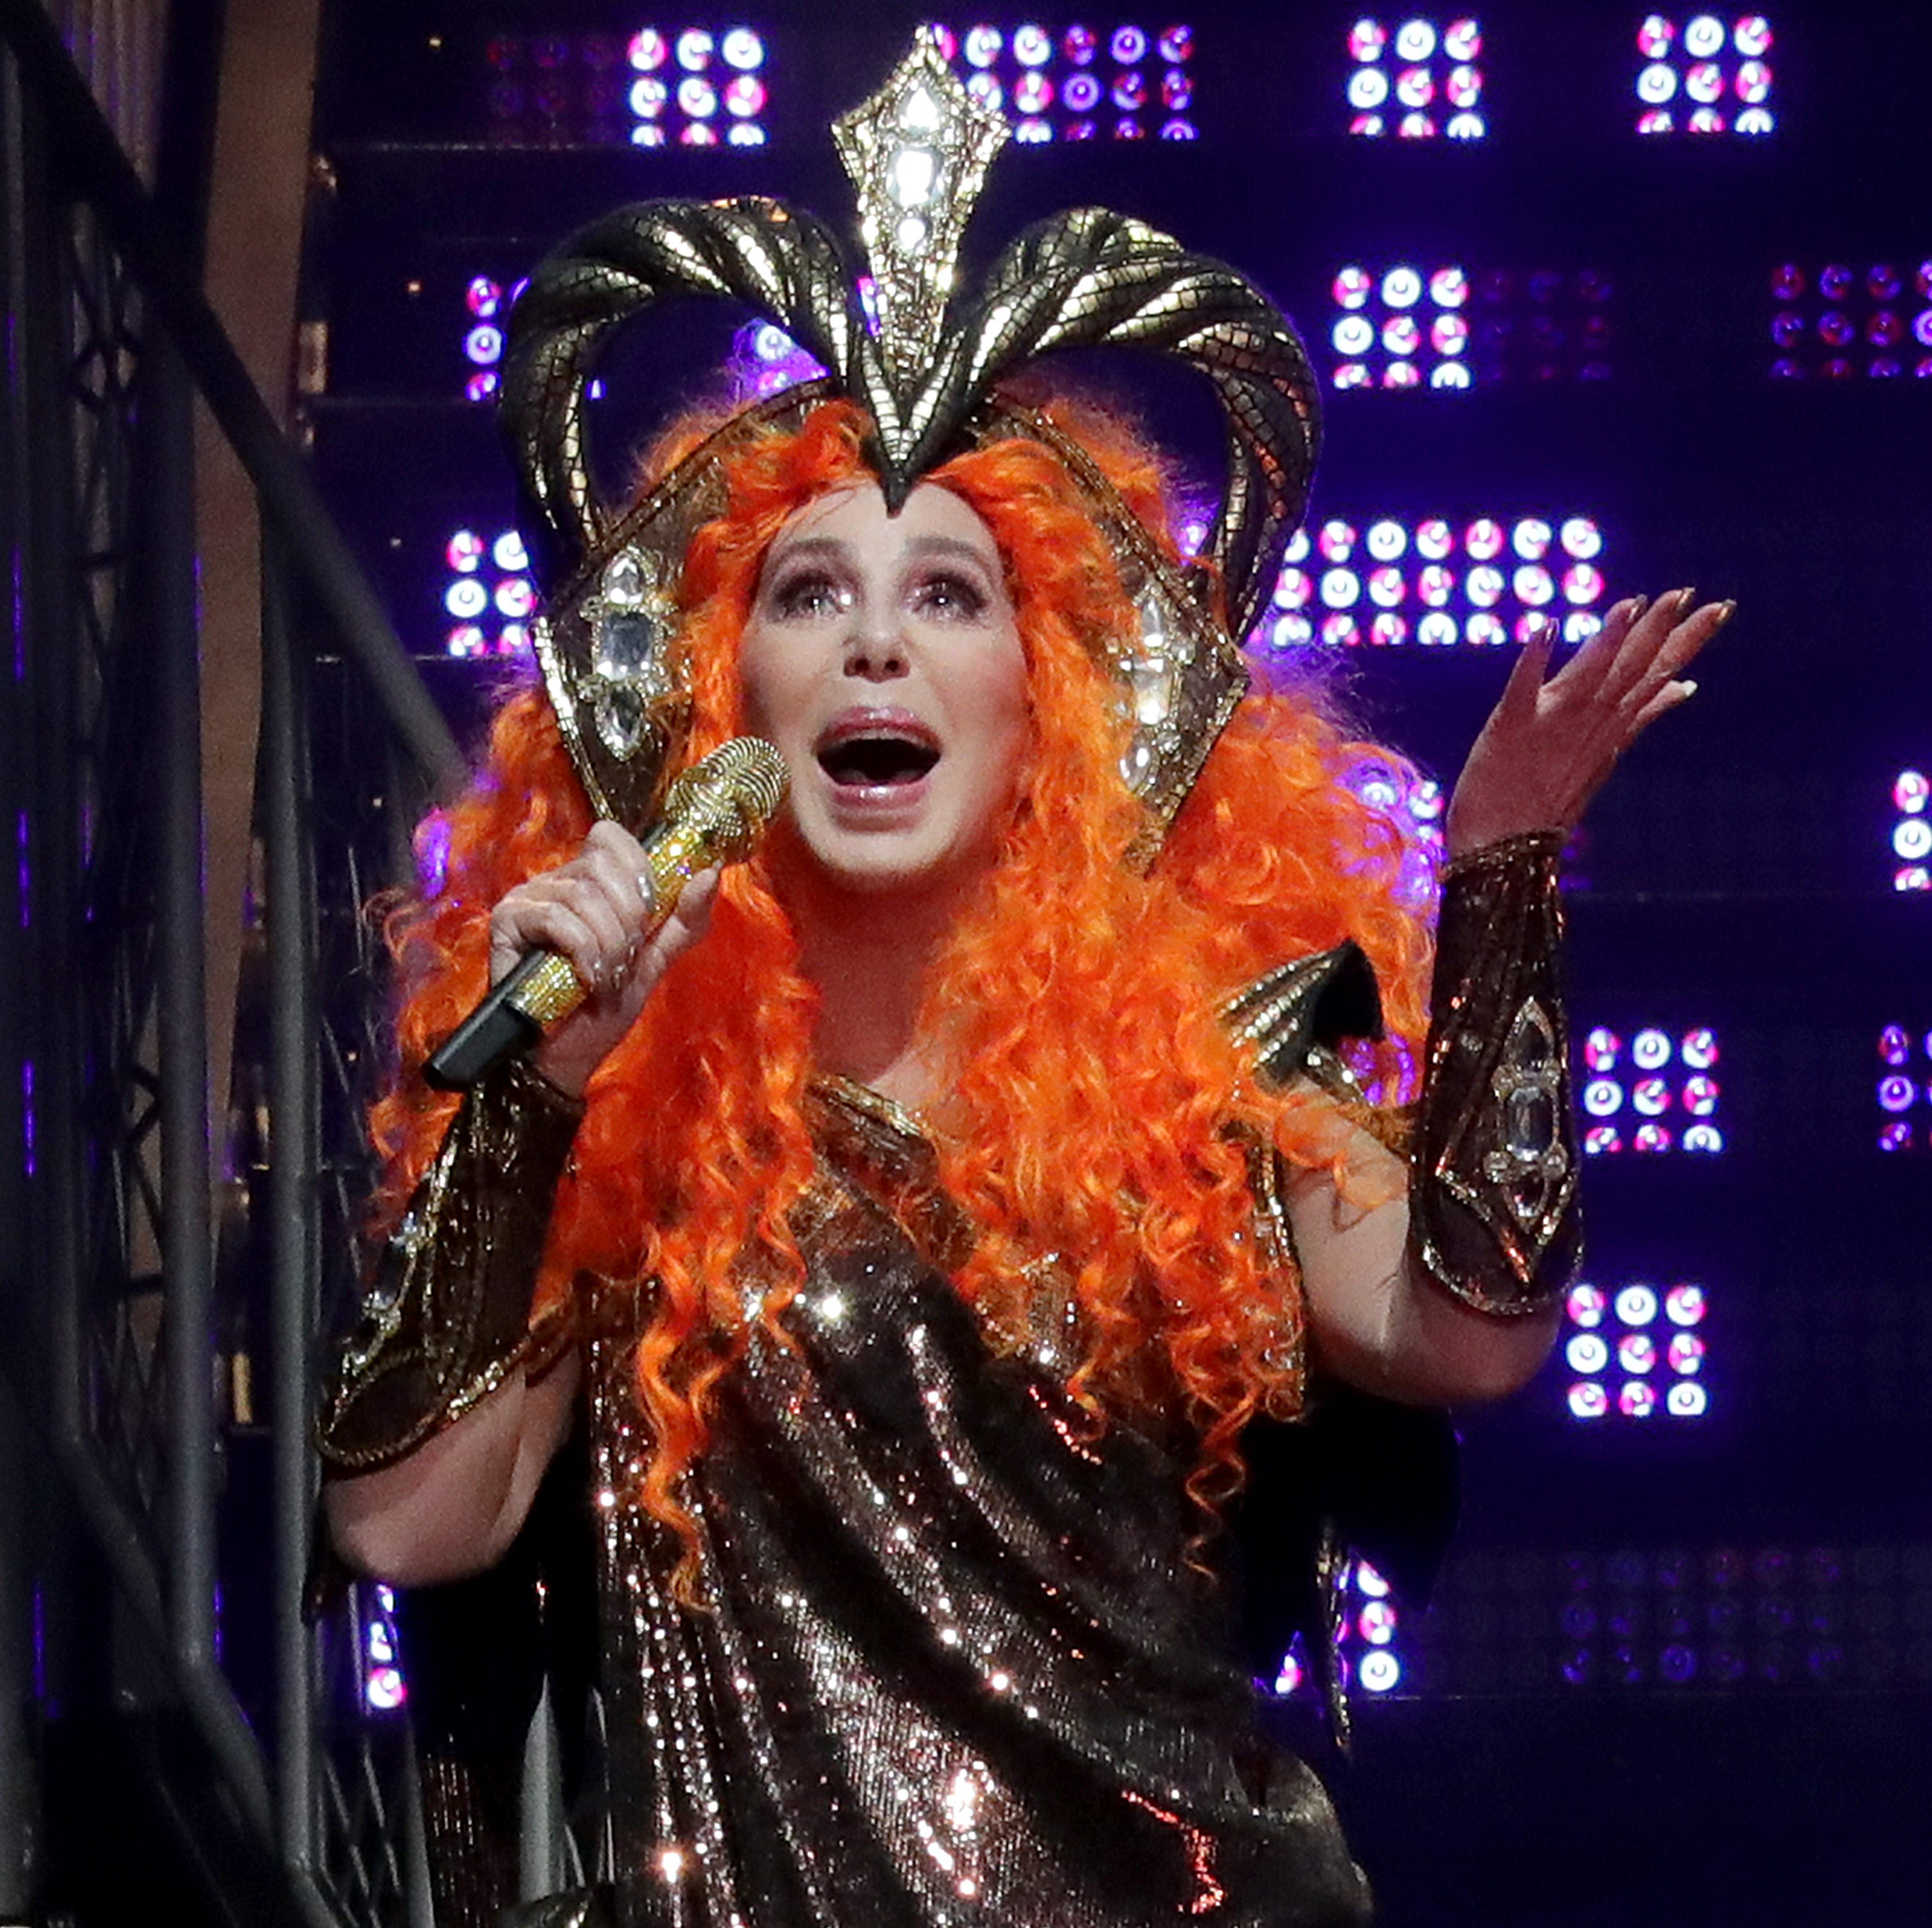 Cher celebrates Mother's Day at Milwaukee's Fiserv Forum with empowering concert